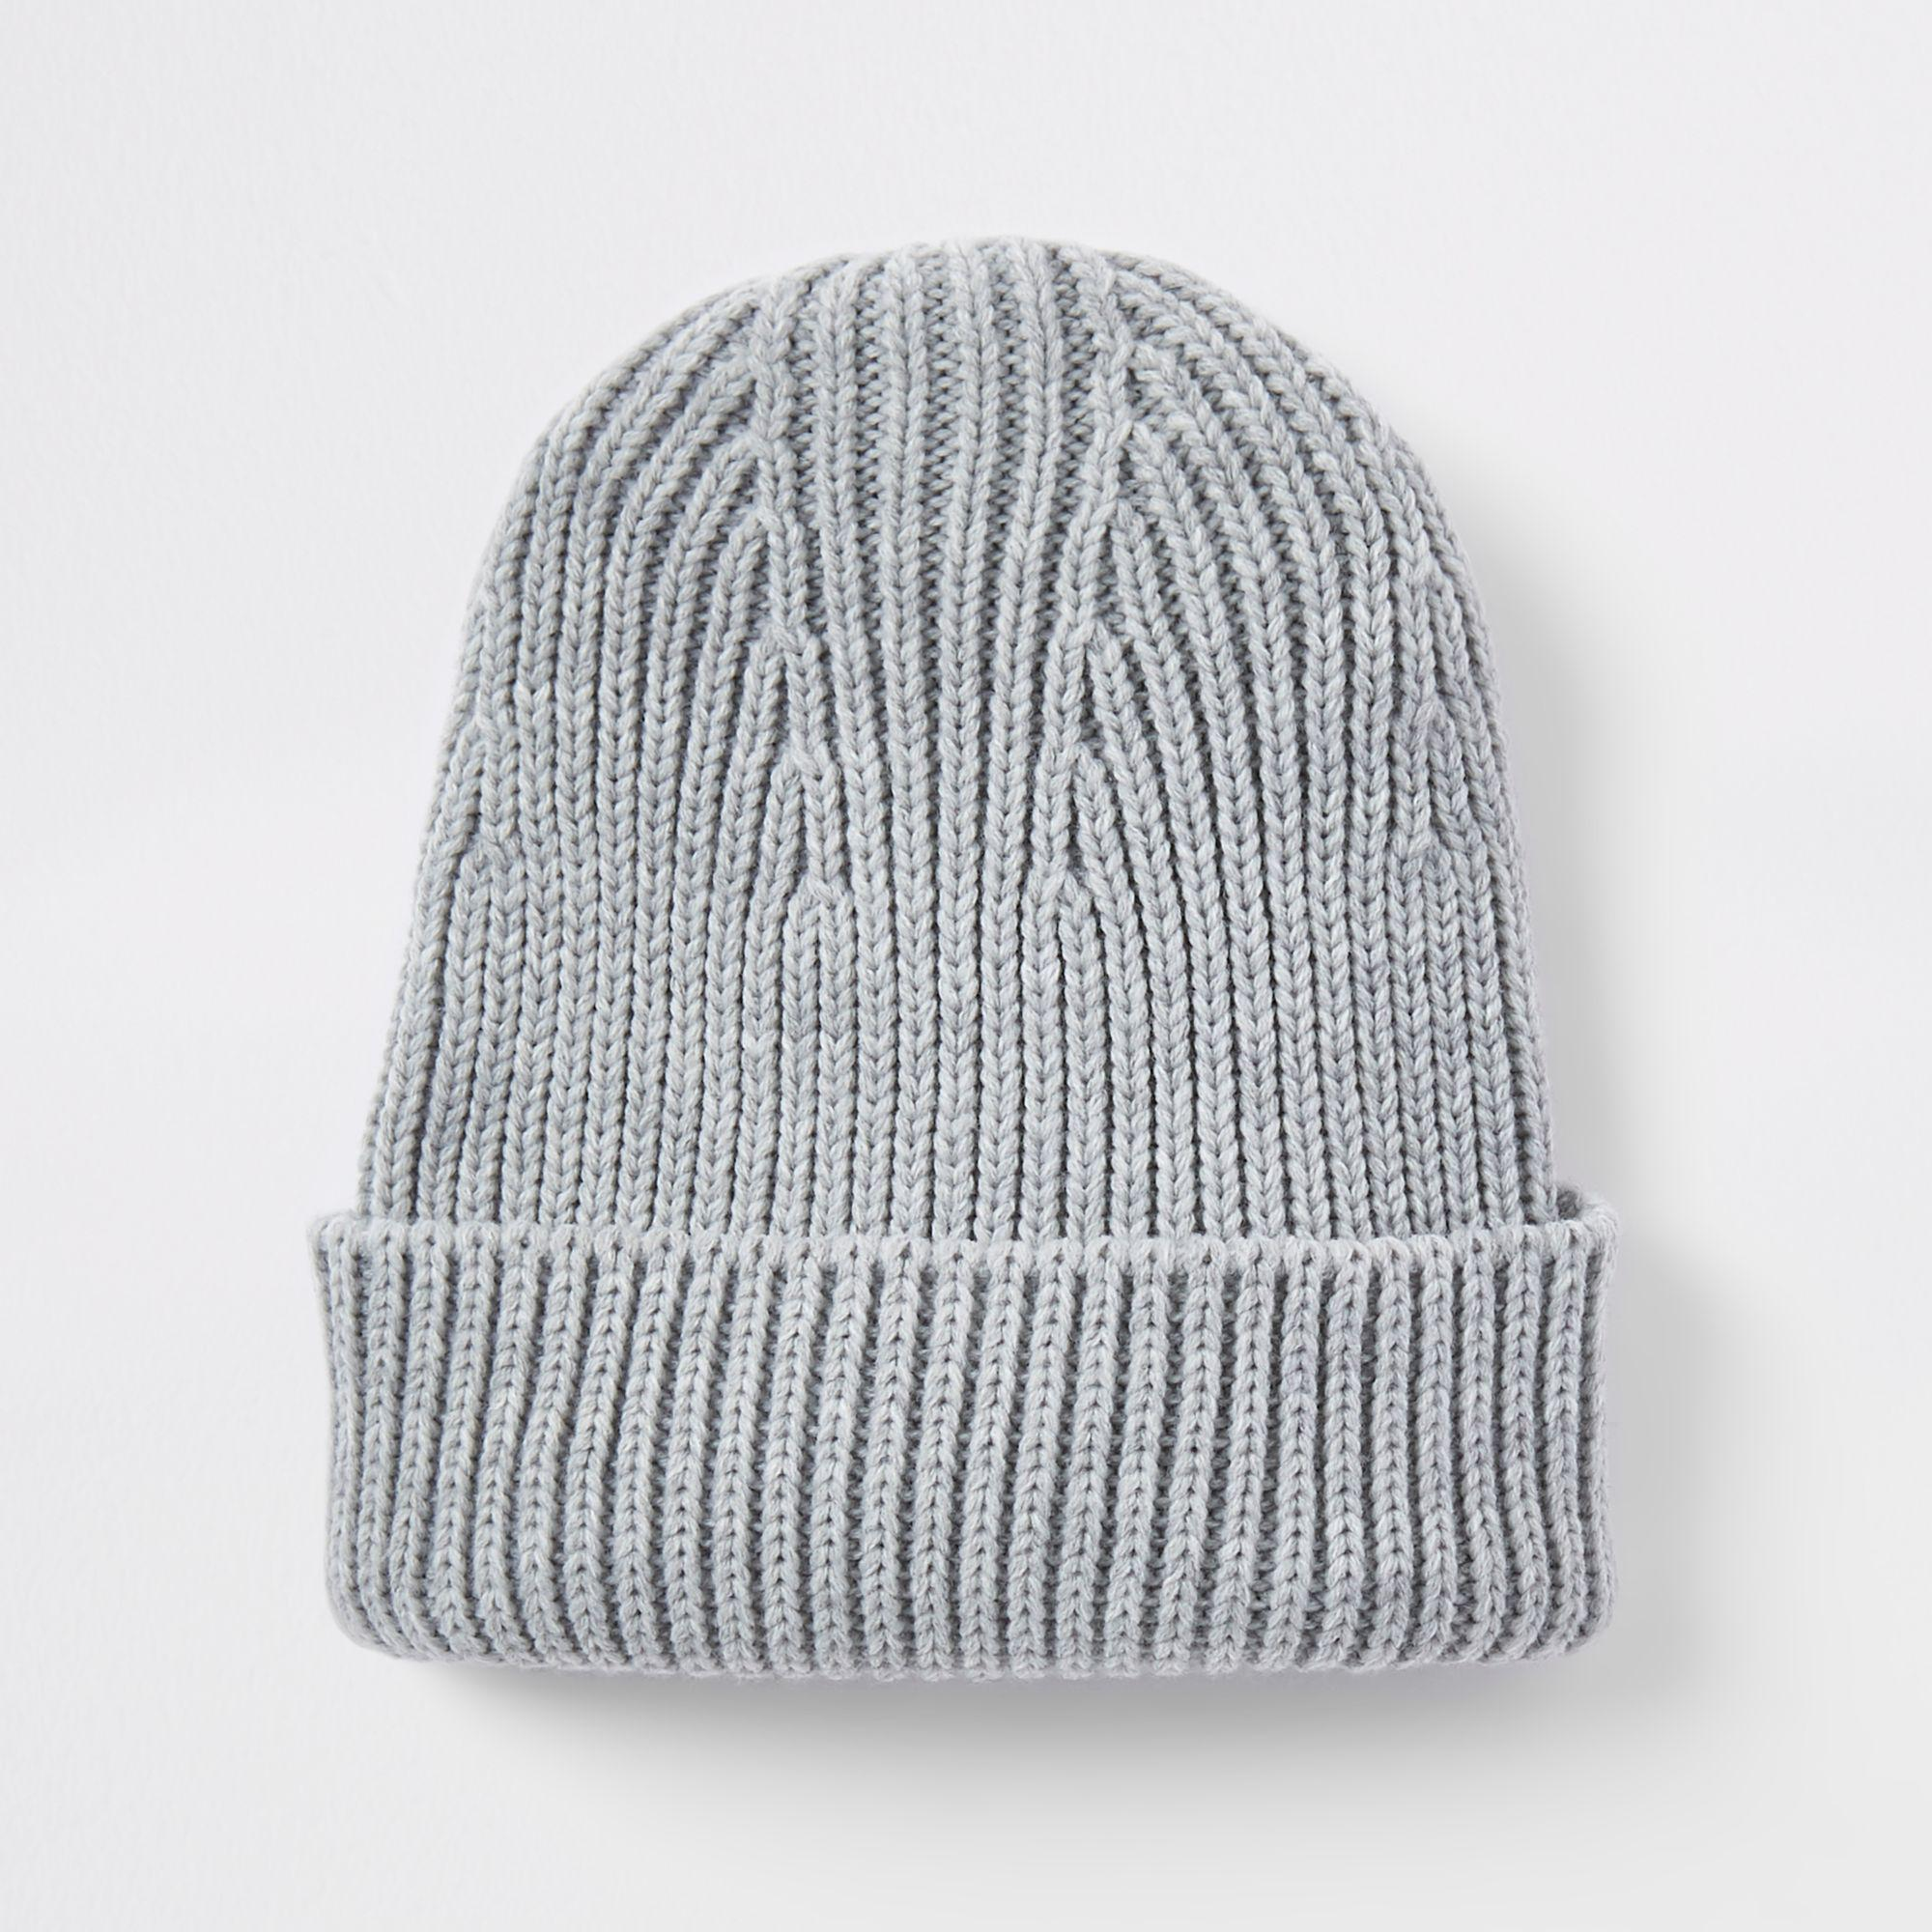 207e4e8974a Lyst - River Island Fisherman Knit Beanie Hat in Gray for Men